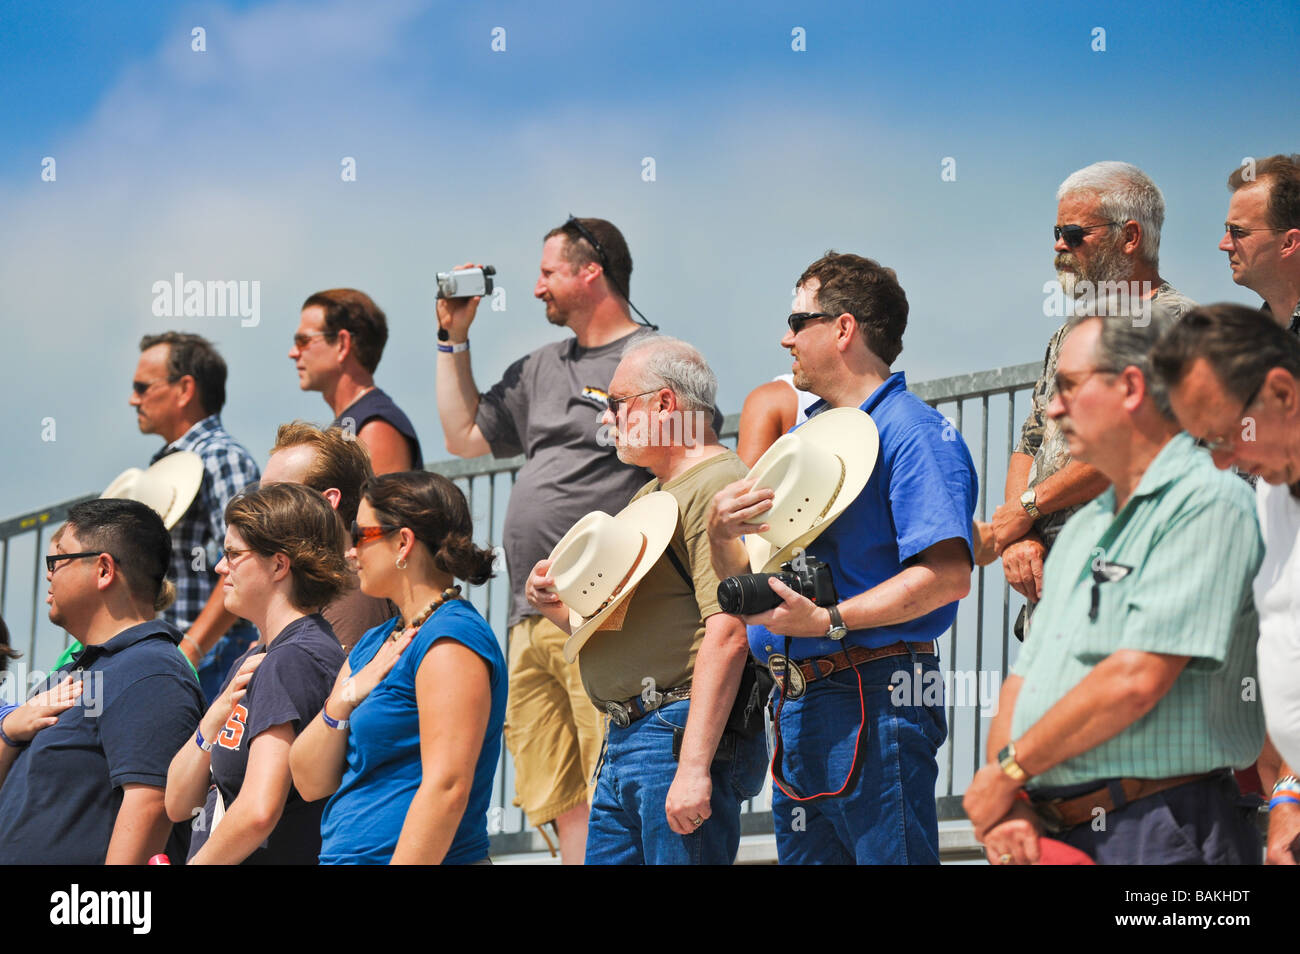 Audience in bleachers stand with hands and hats over hearts during national anthem - Stock Image